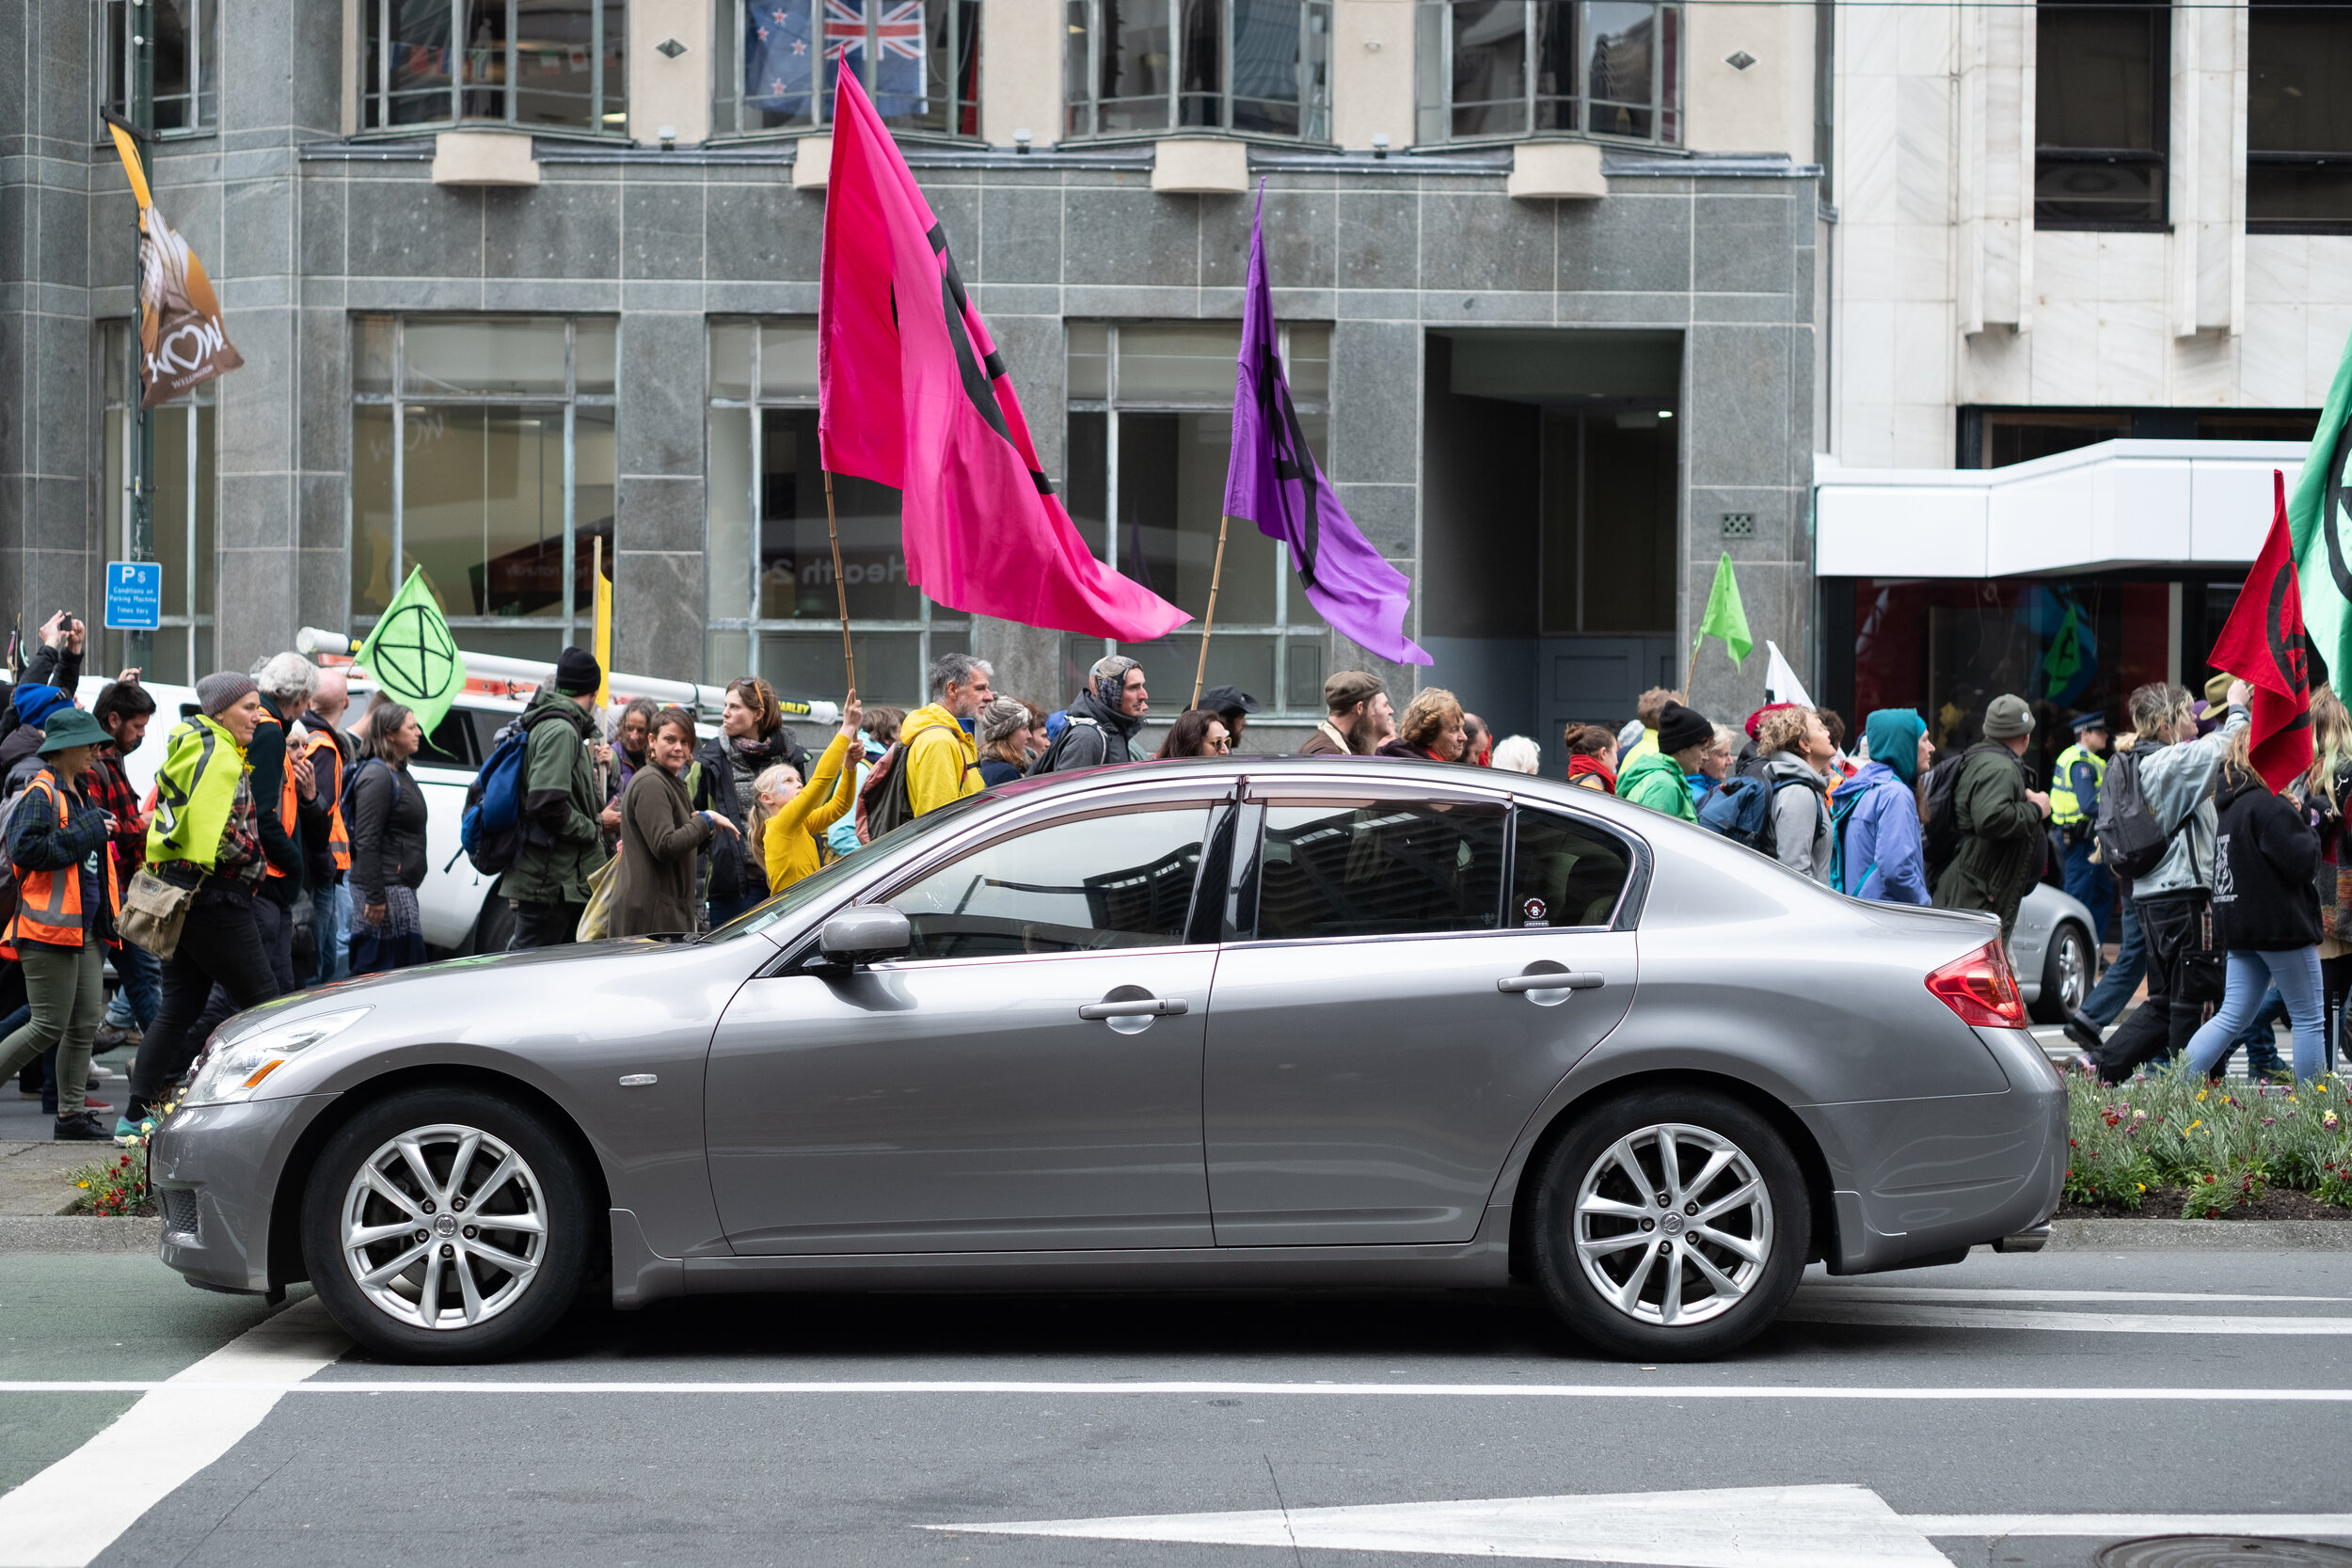 protest and car-2.jpg